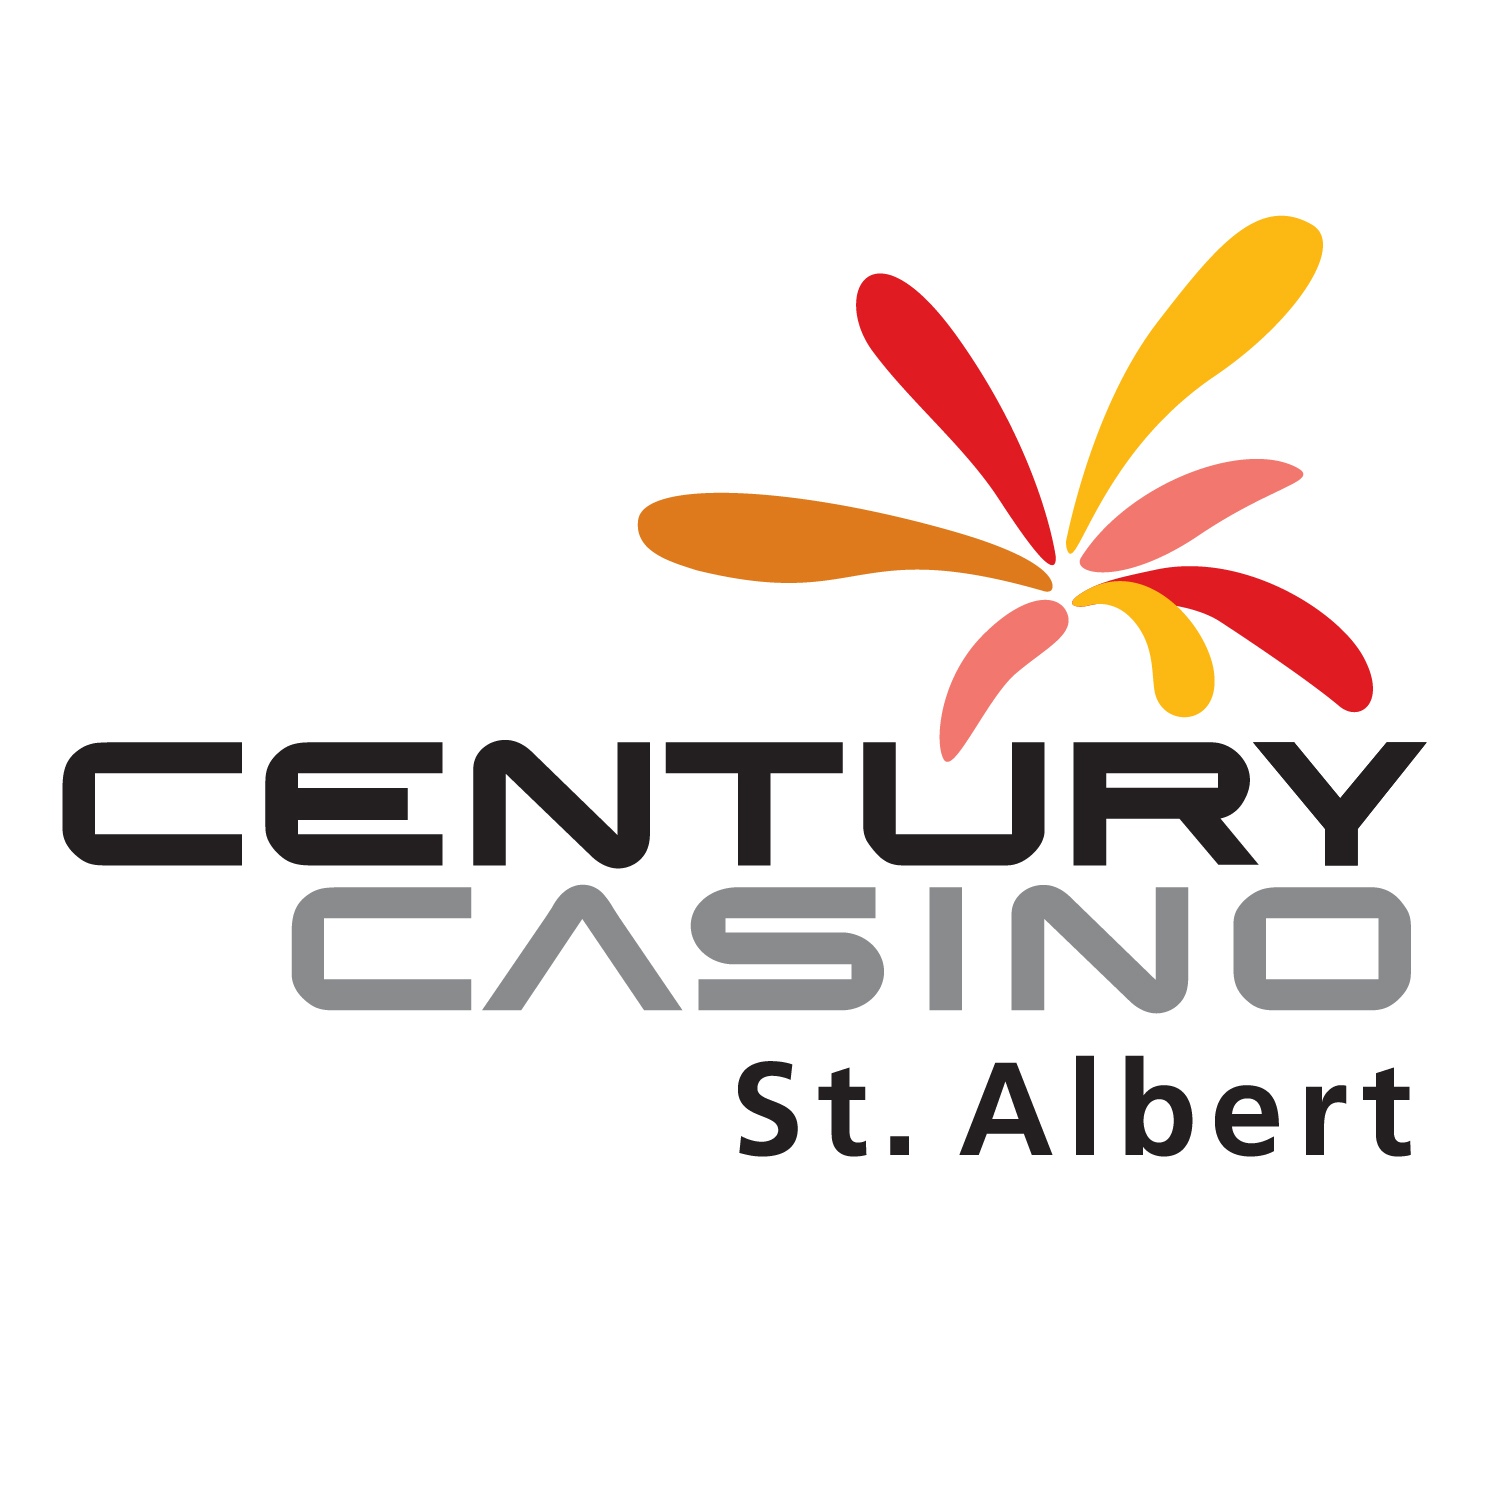 Century Casino - St. Albert - default icon